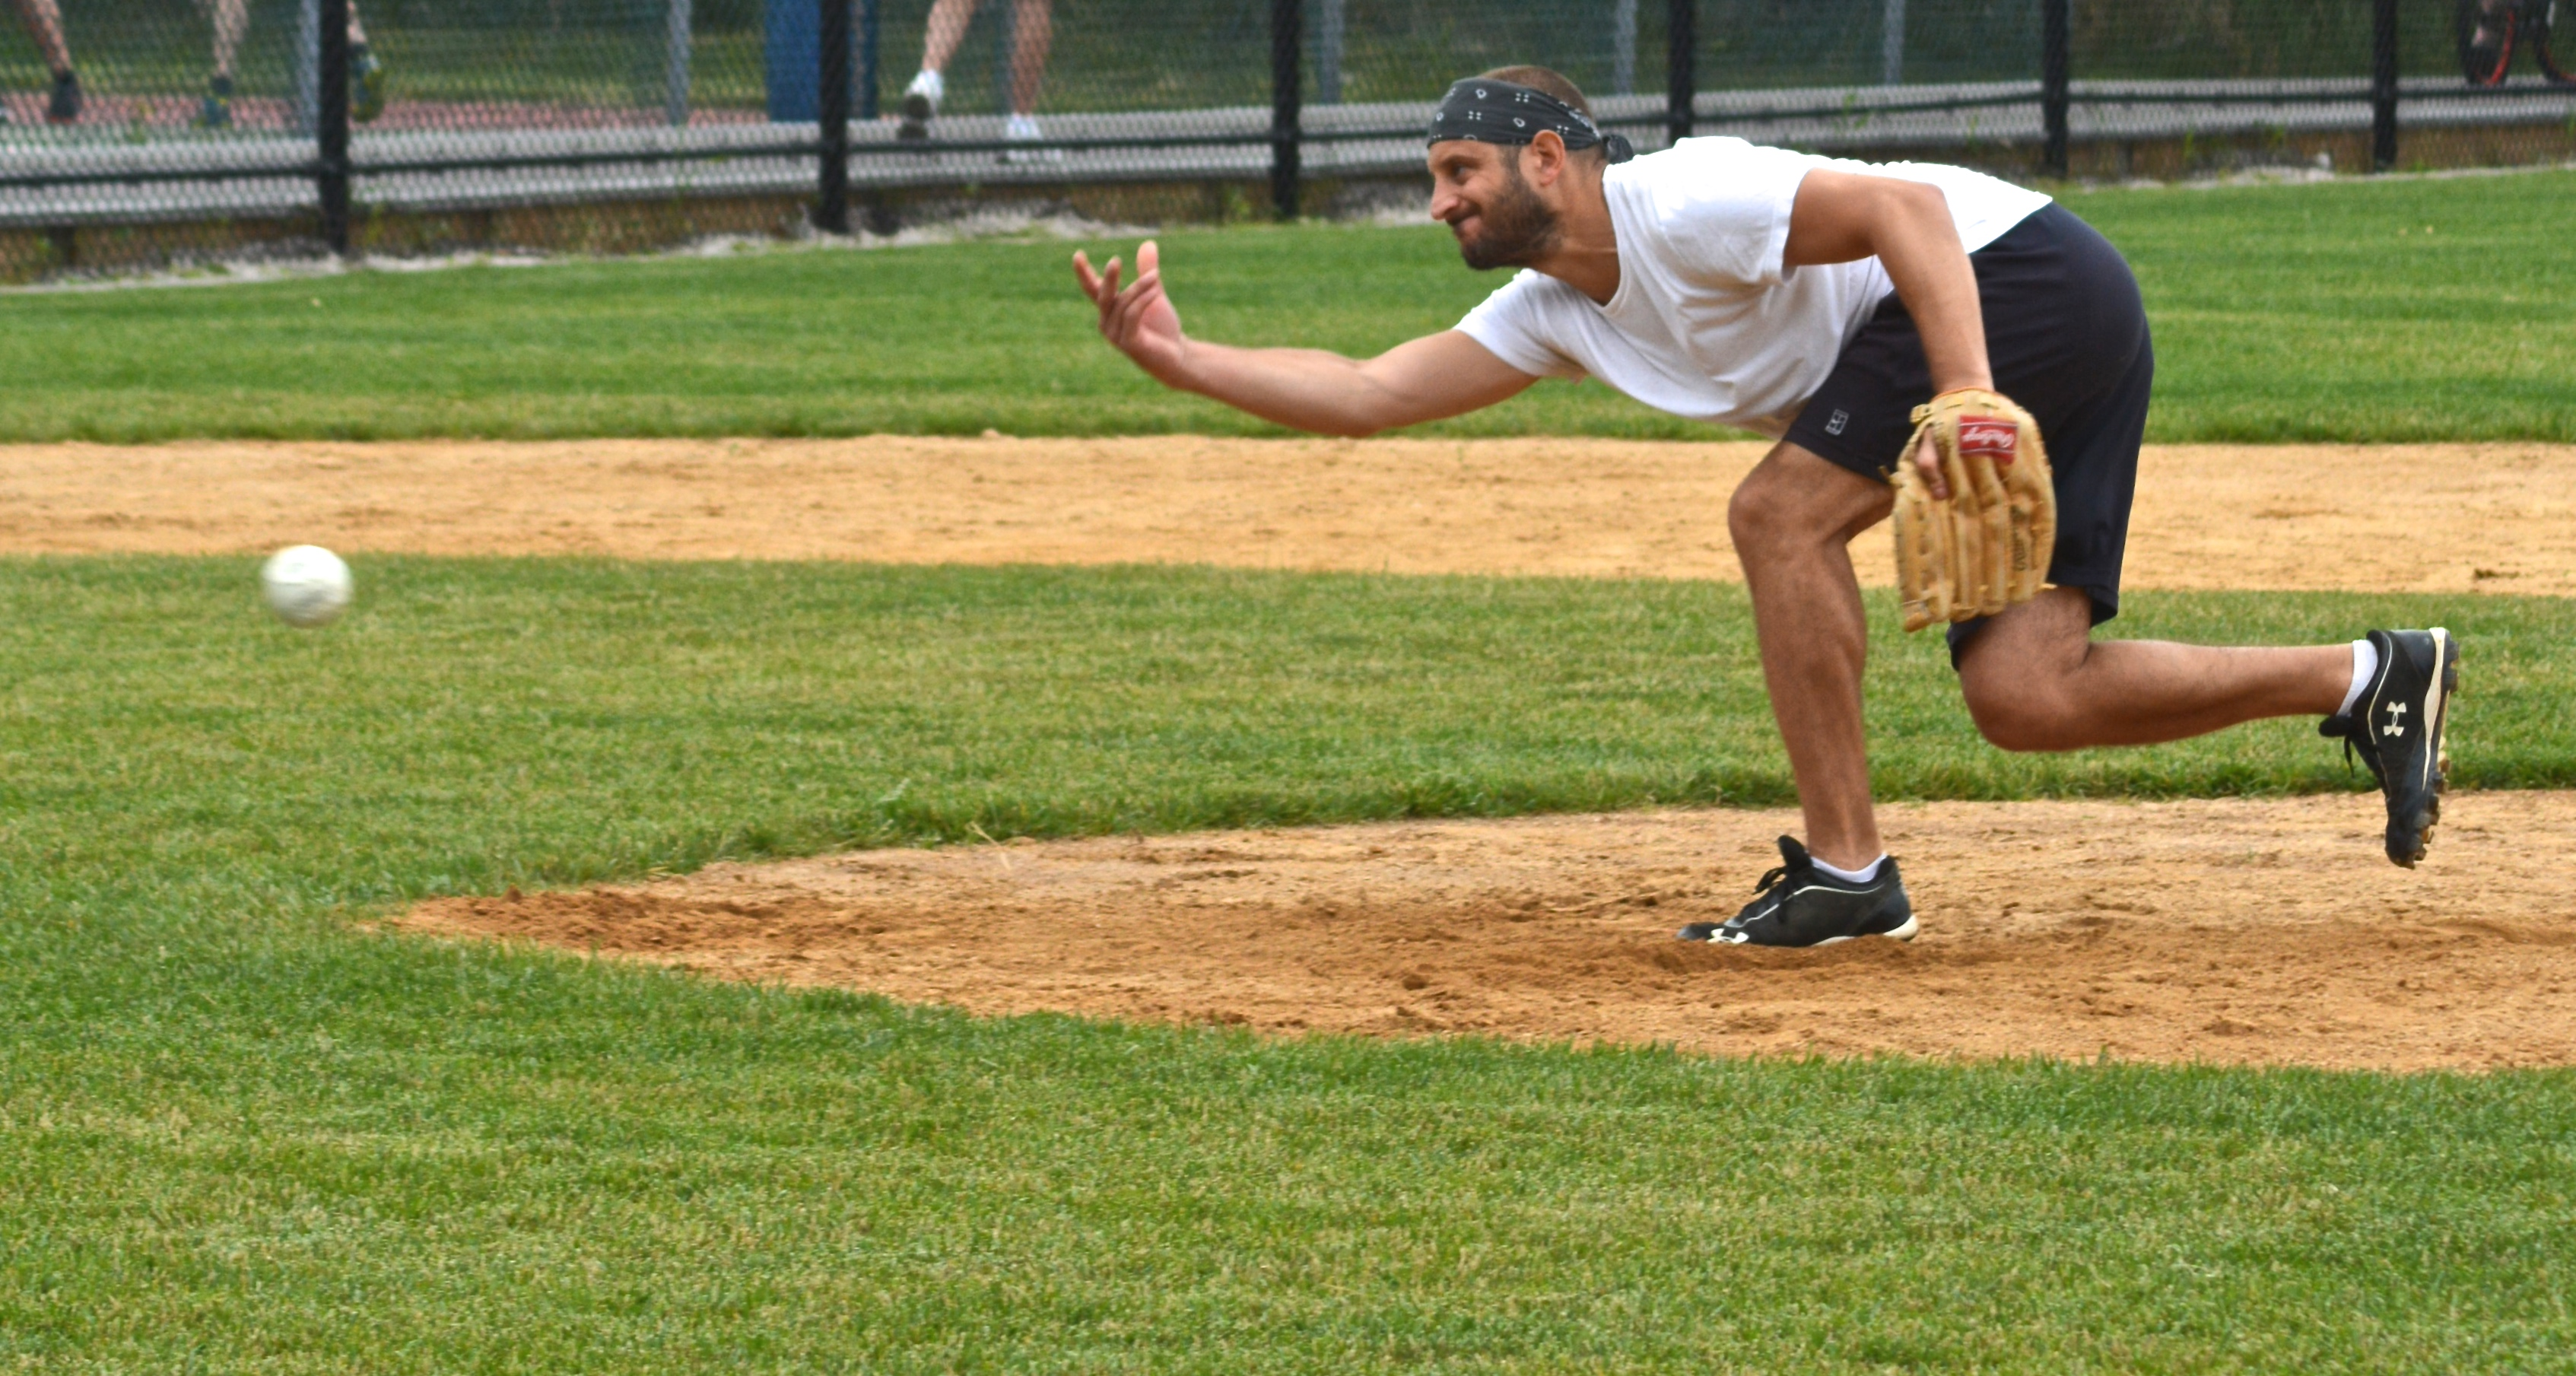 Rich Perna pitching